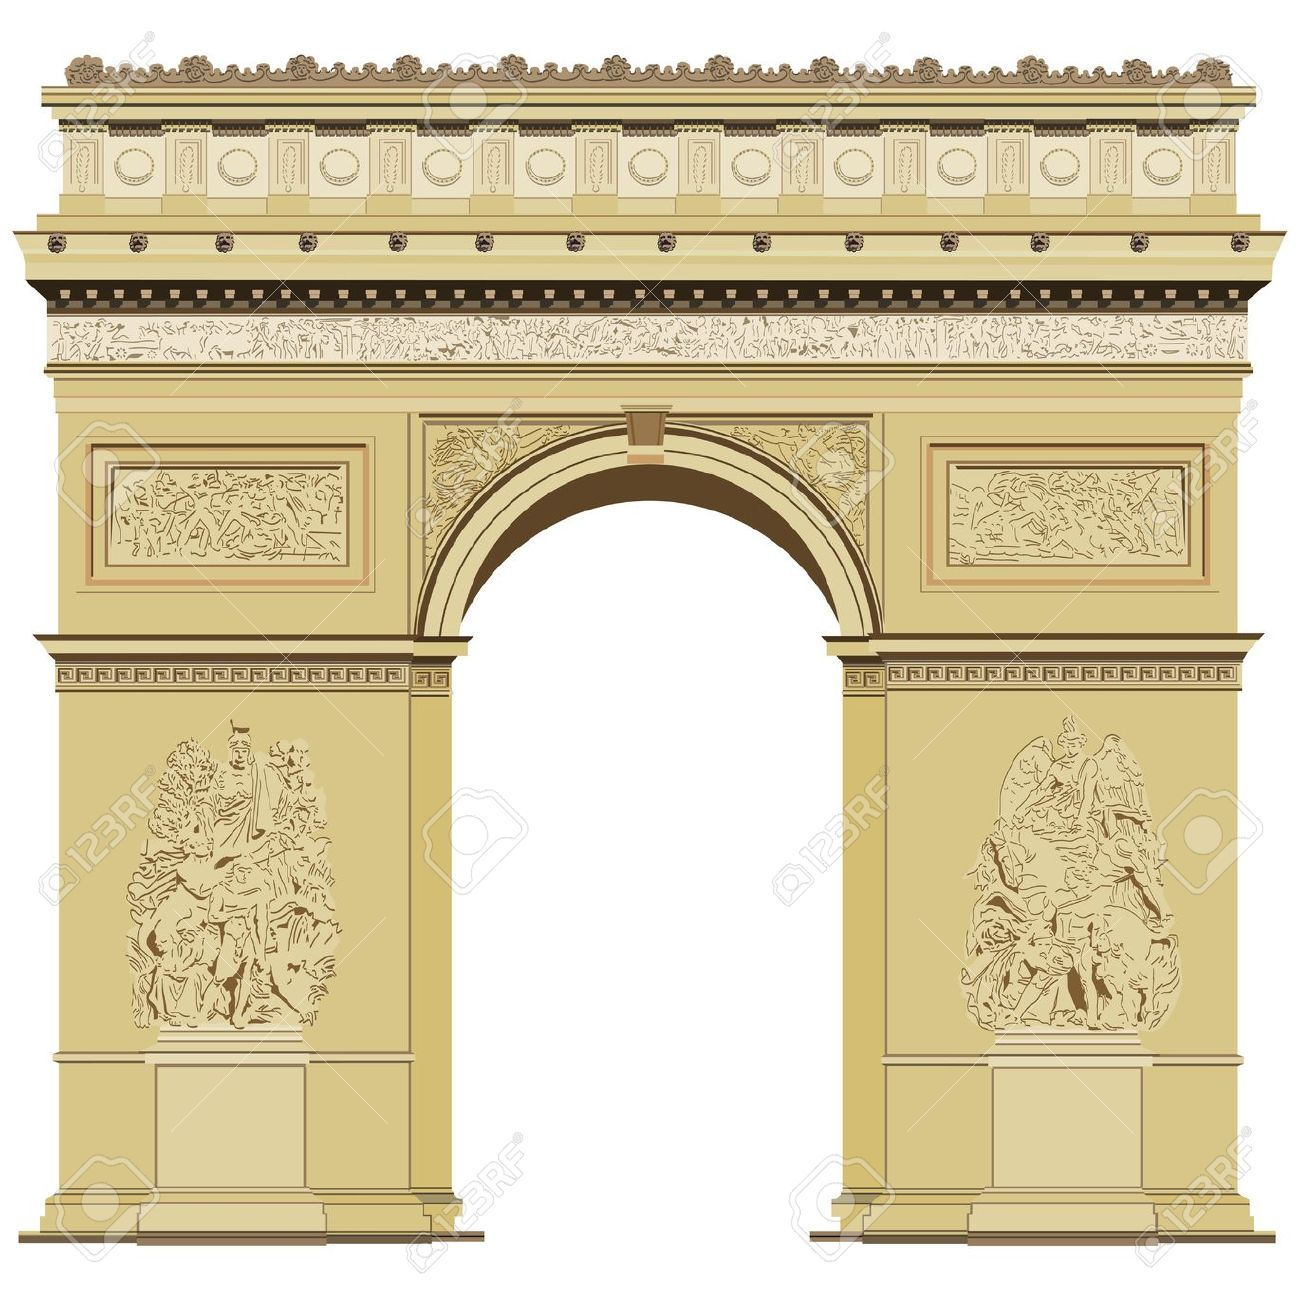 Arch Of Triumph Royalty Free Cliparts, Vectors, And Stock.